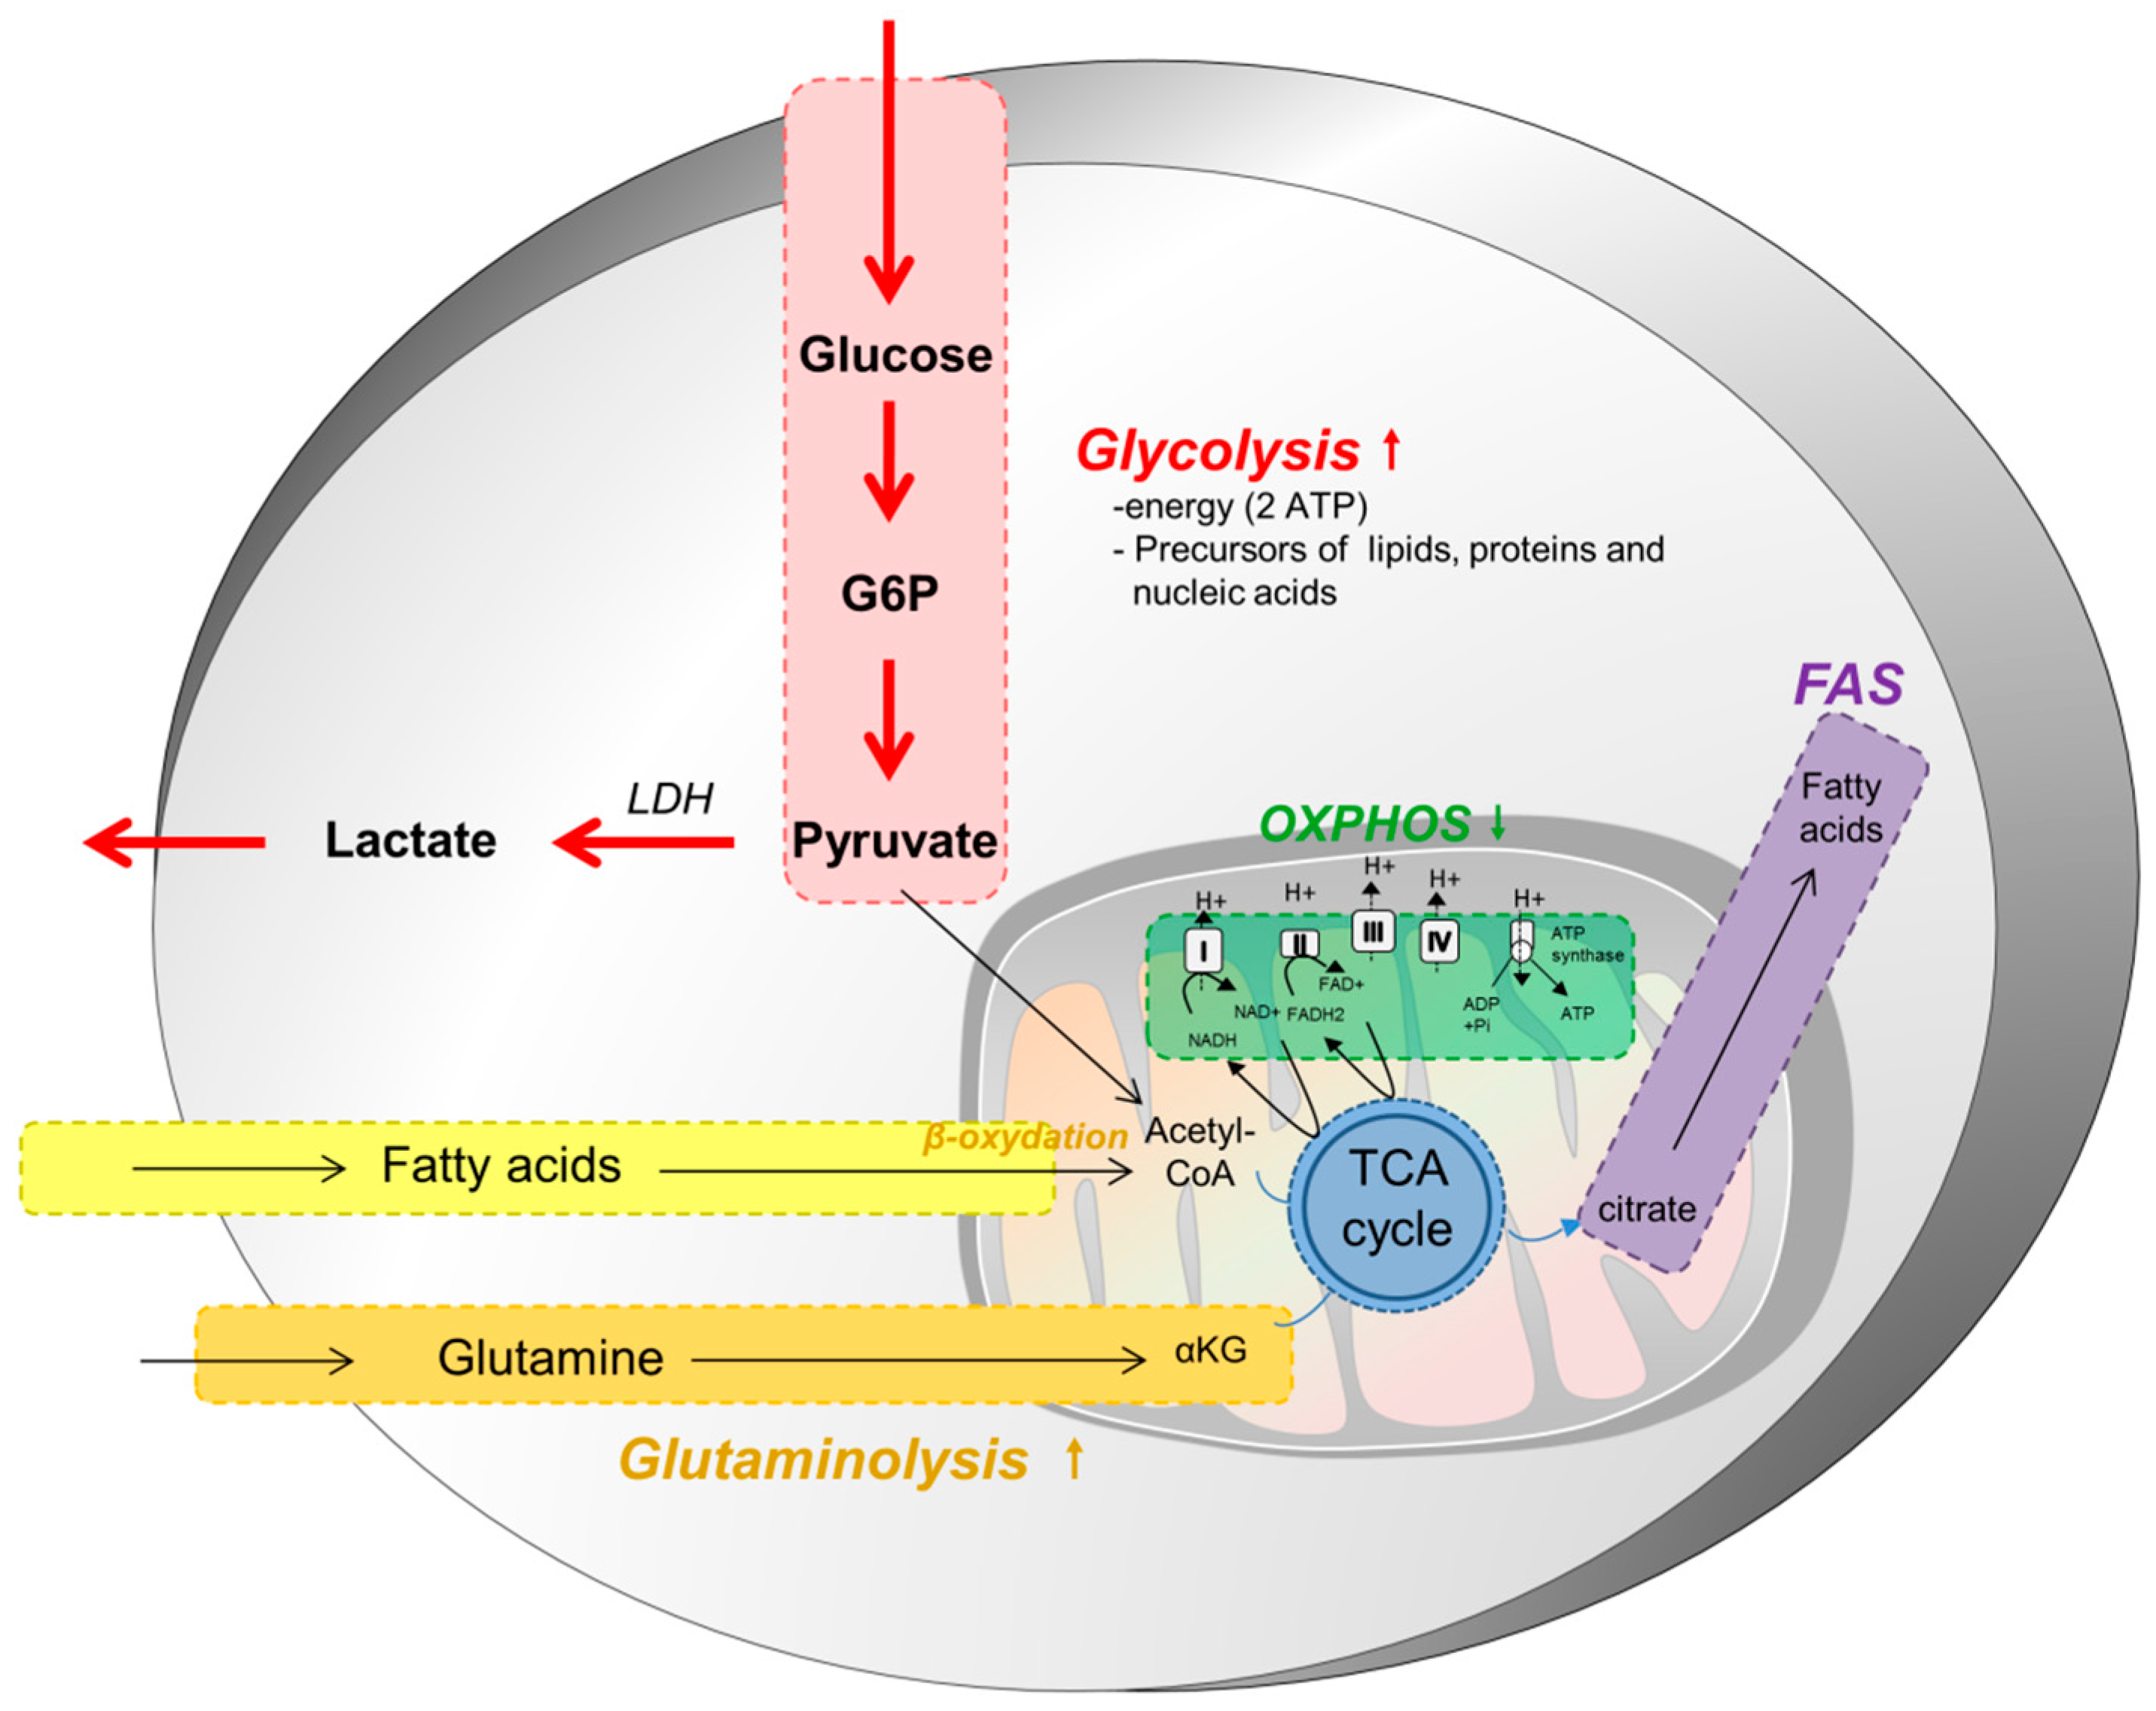 Cellular metabolism and the immune response control